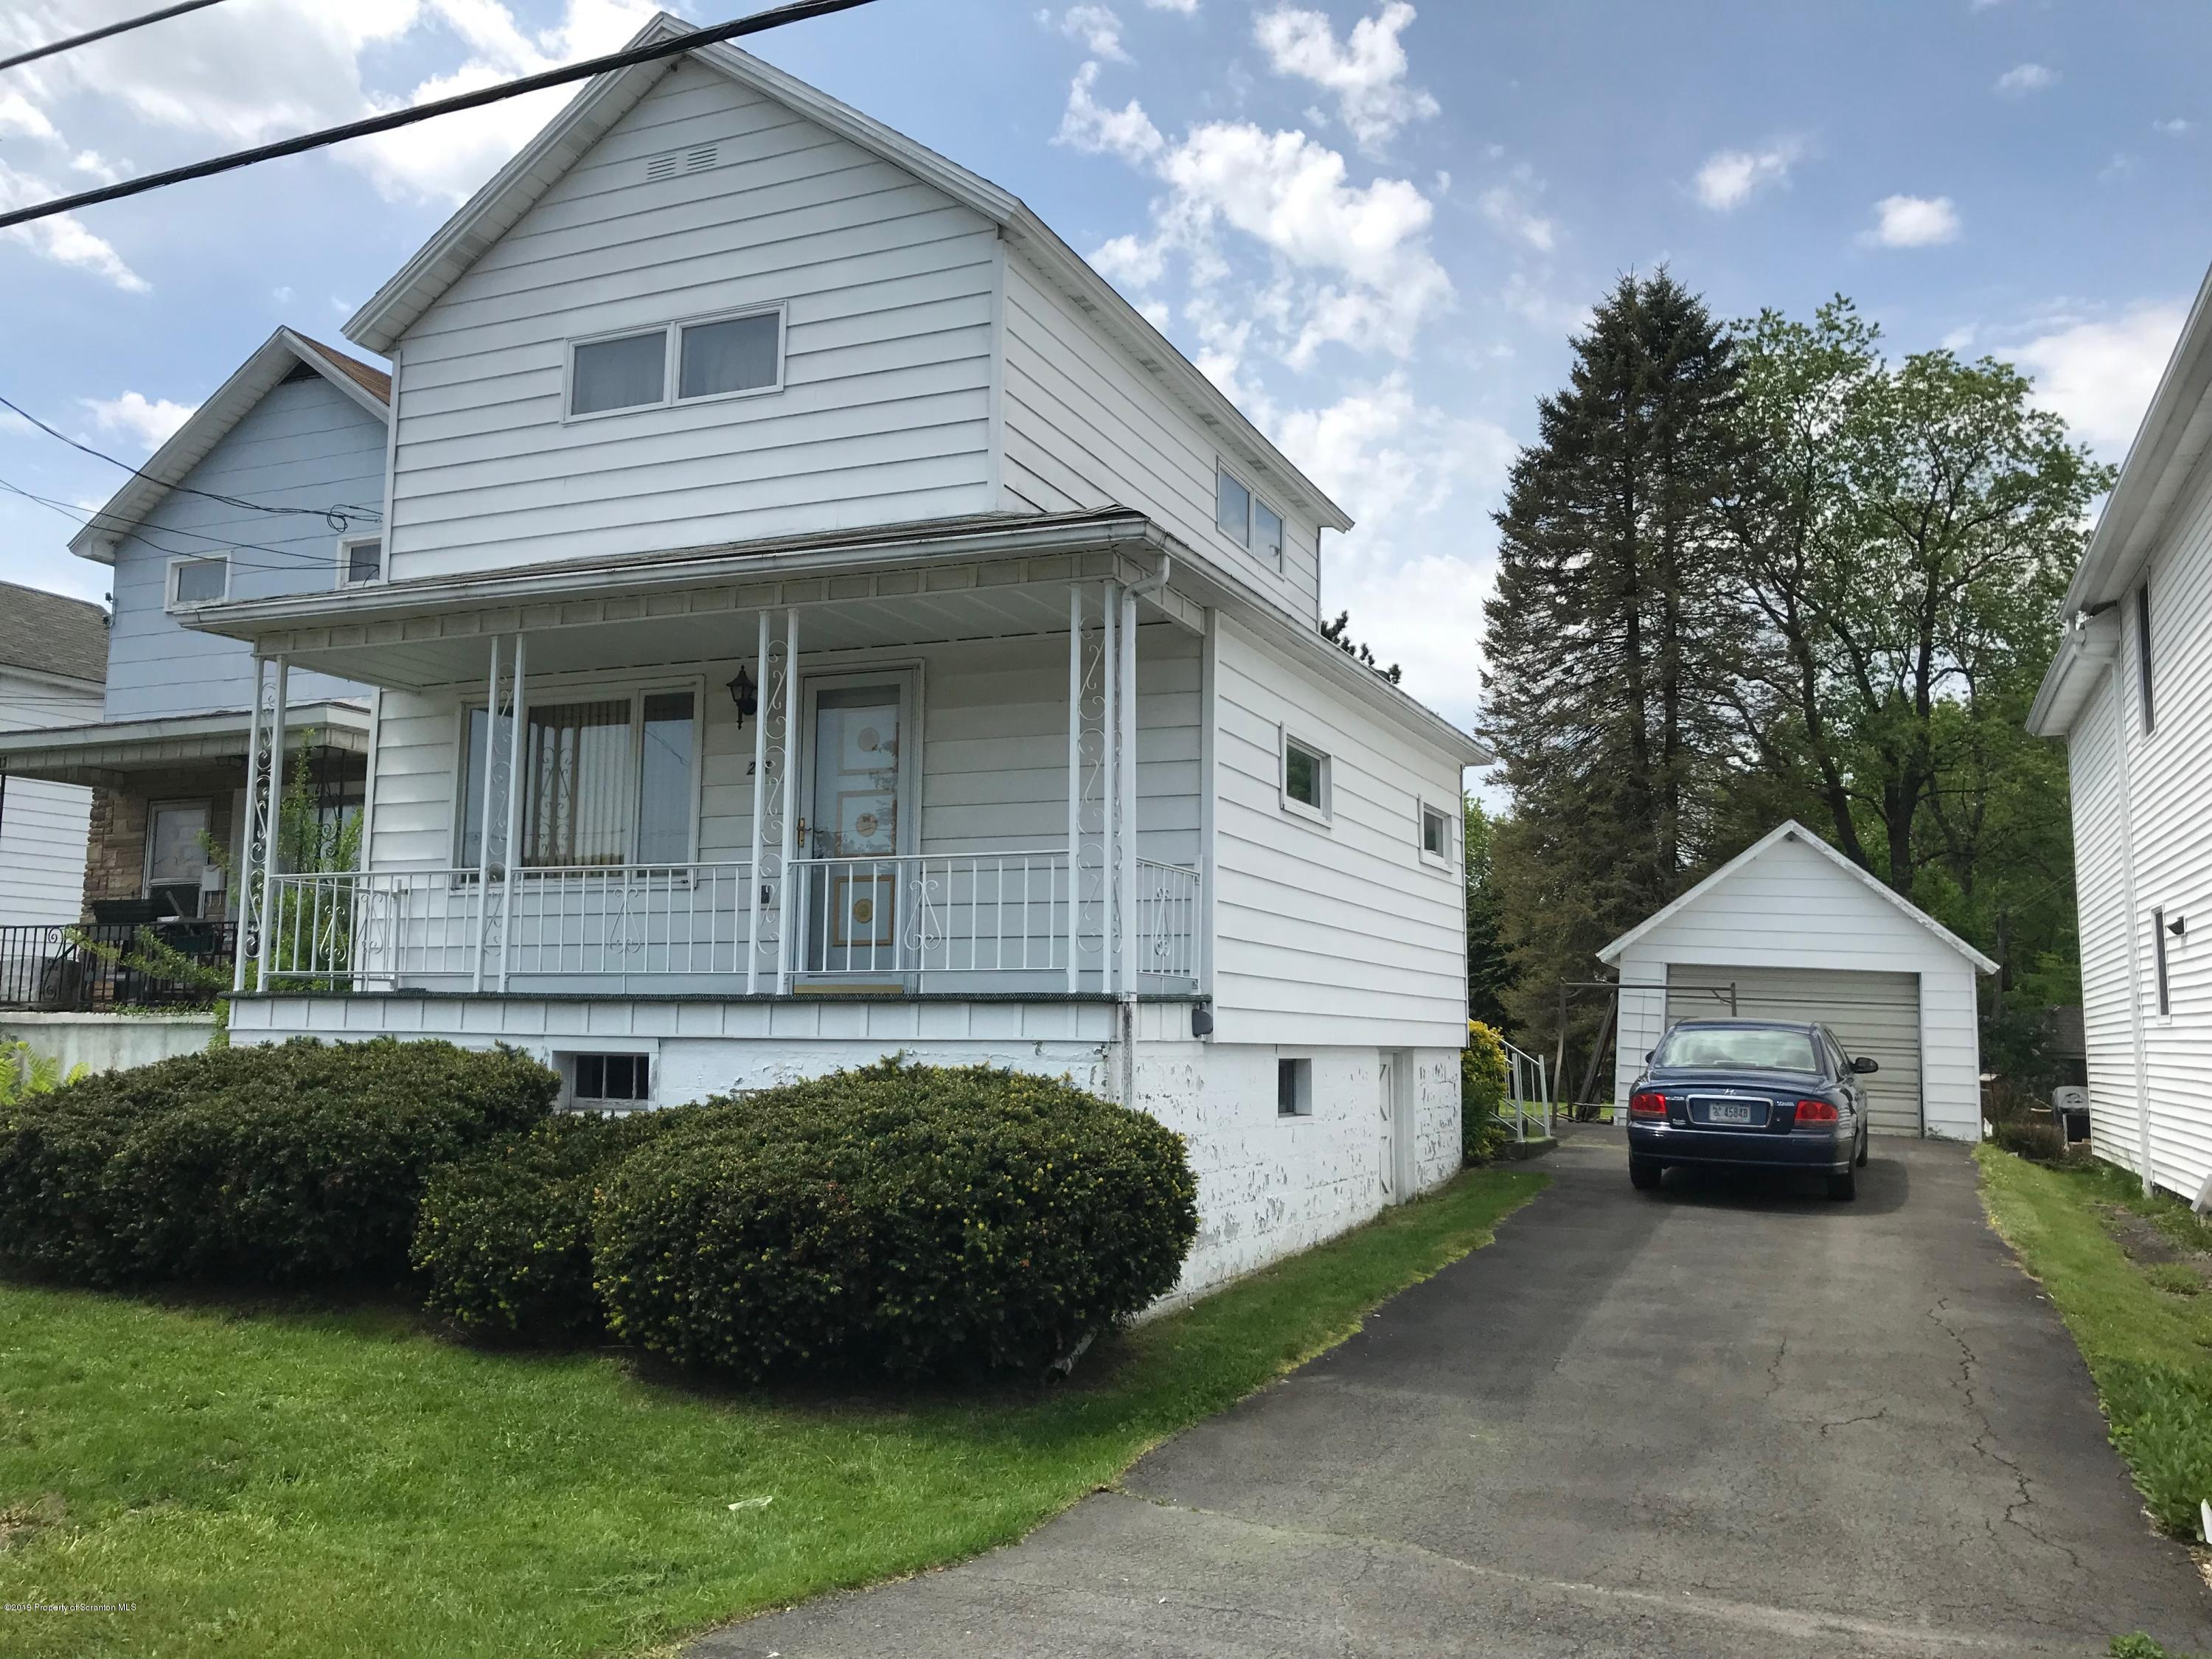 217 Front St, Browndale, Pennsylvania 18421, 2 Bedrooms Bedrooms, 5 Rooms Rooms,2 BathroomsBathrooms,Single Family,For Sale,Front,19-2359